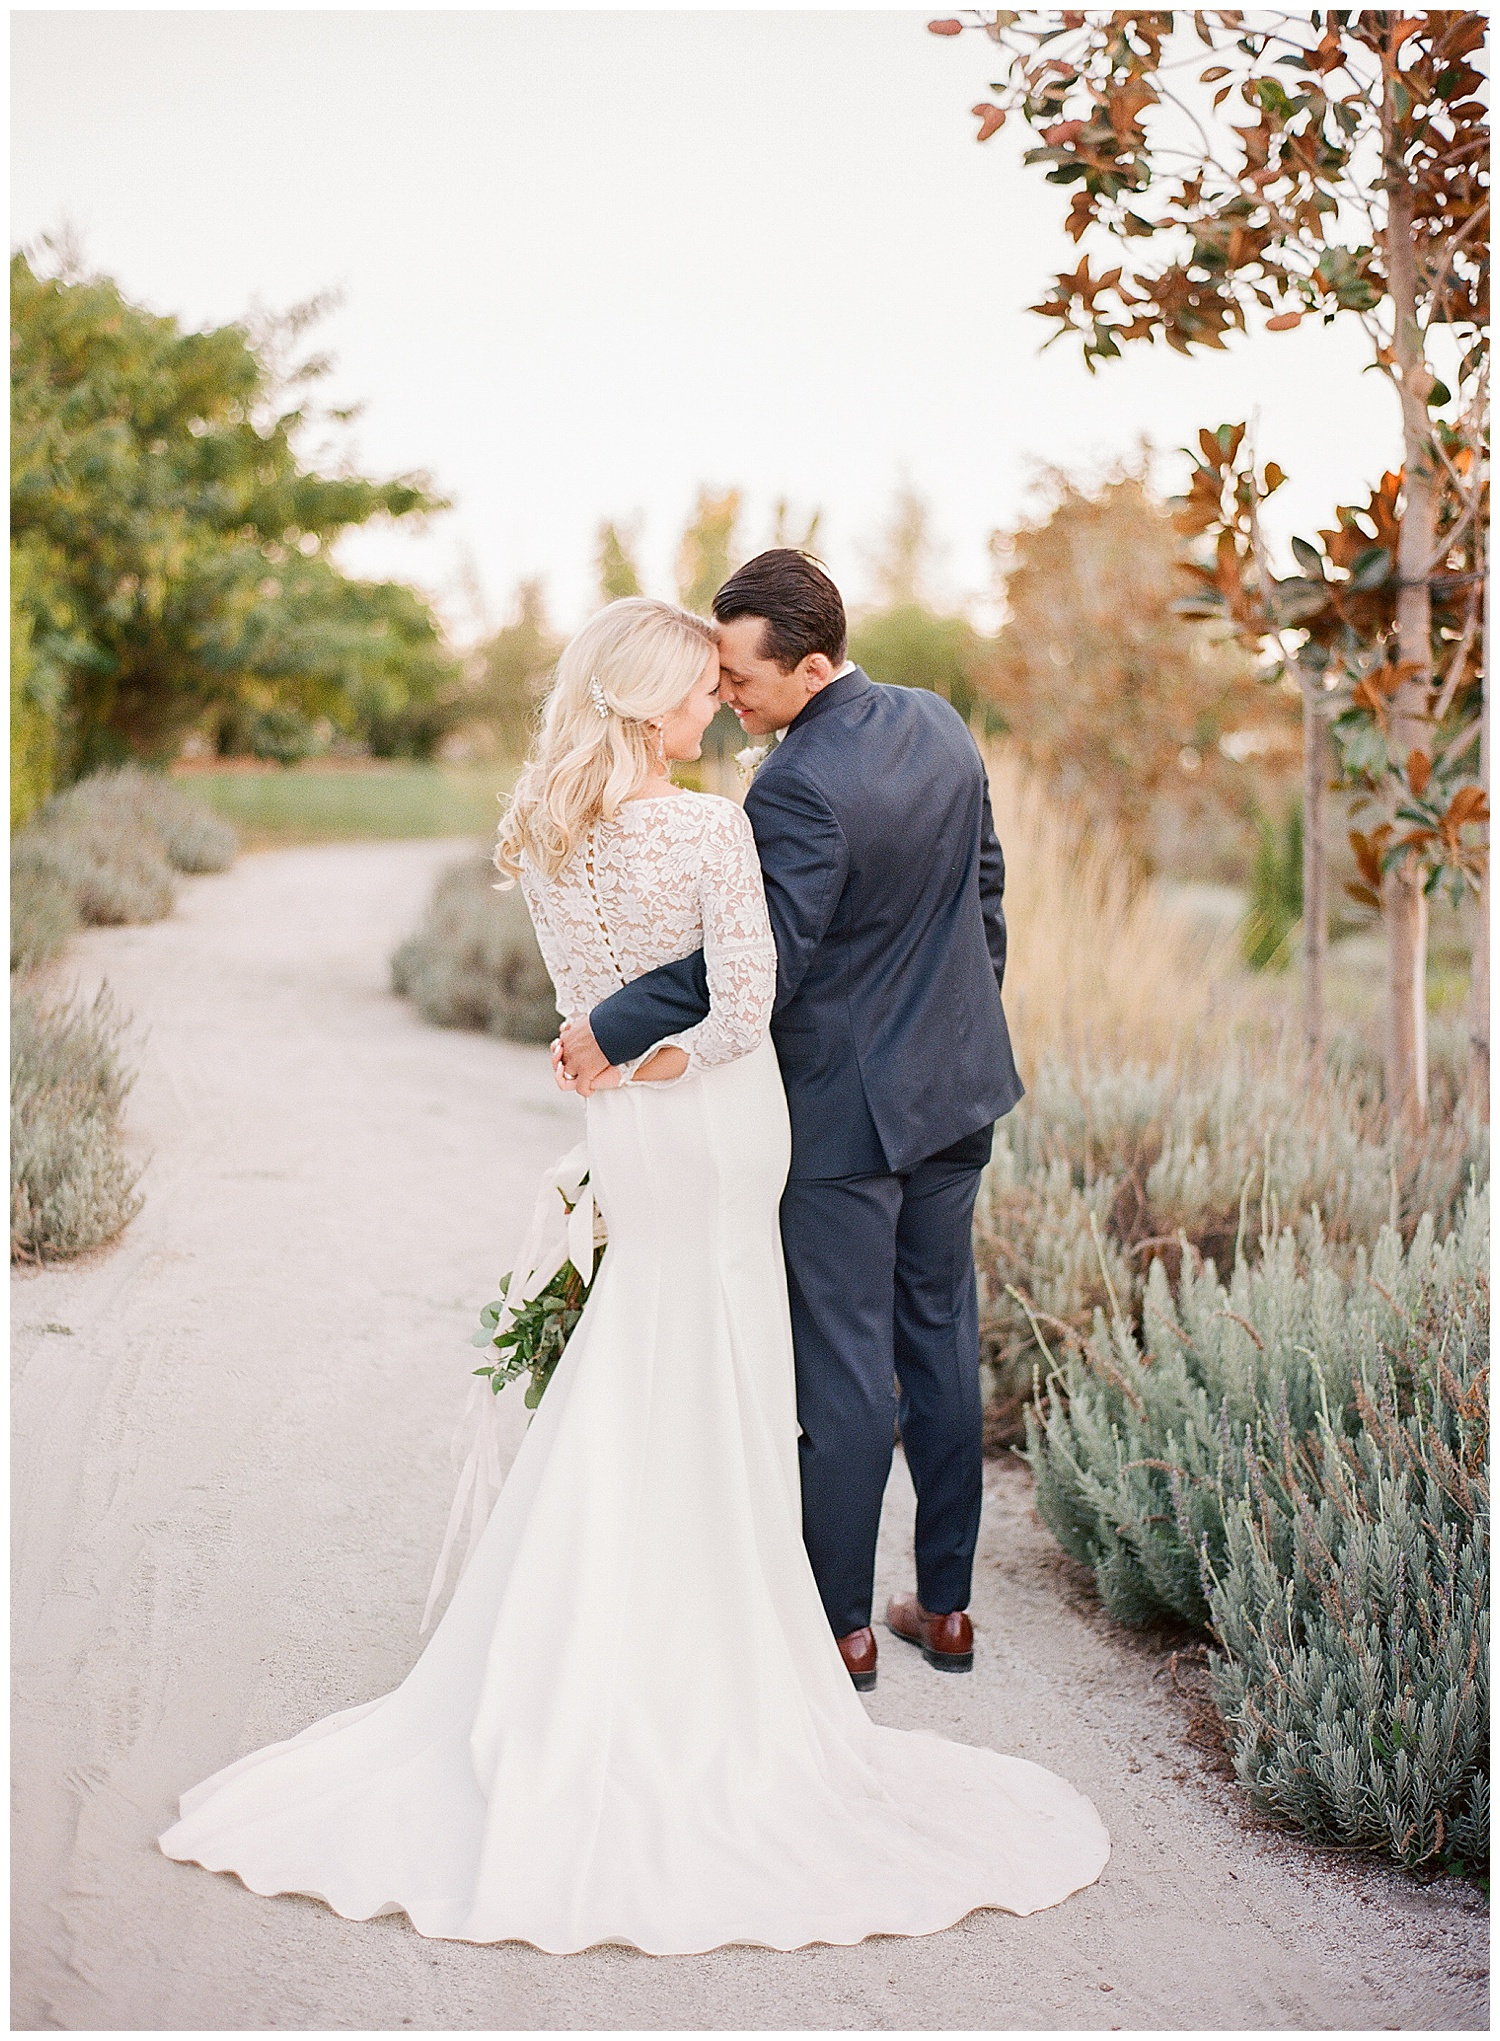 Janine_Licare_Photography_San_Francisco_Wedding_Photographer_Carneros_Tyge_Williams_Sonoma_Napa_0222.jpg